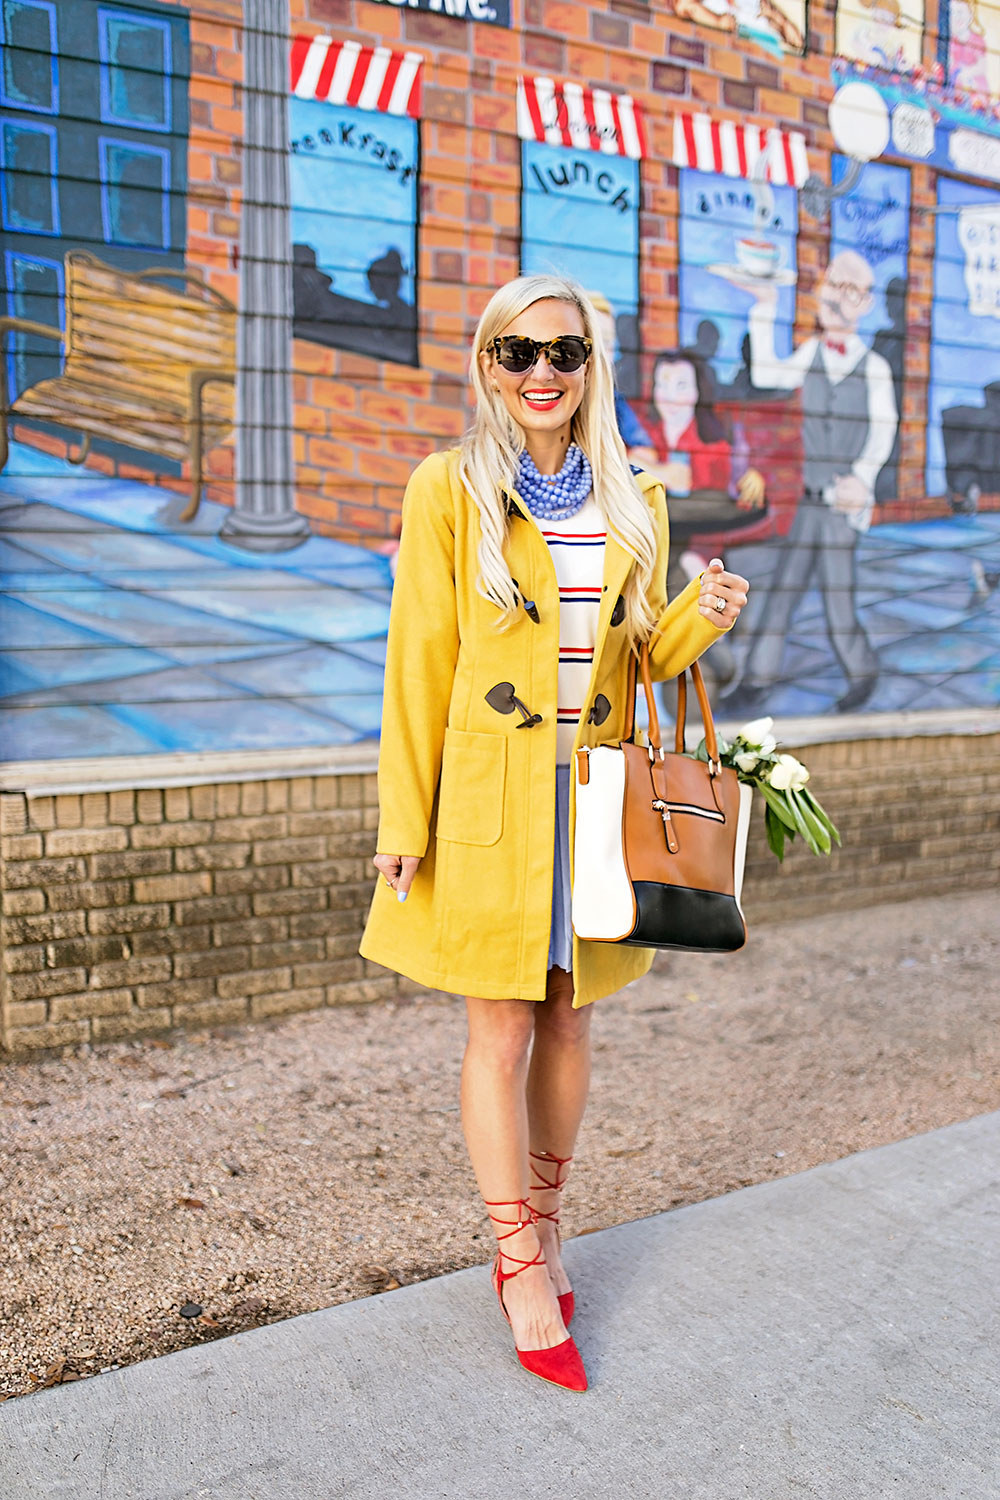 vandi-fair-blog-lauren-vandiver-dallas-texas-southern-fashion-blogger-modcloth-mustard-yellow-pea-coat-theatre-greetings-saffron-red-lace-up-pumps